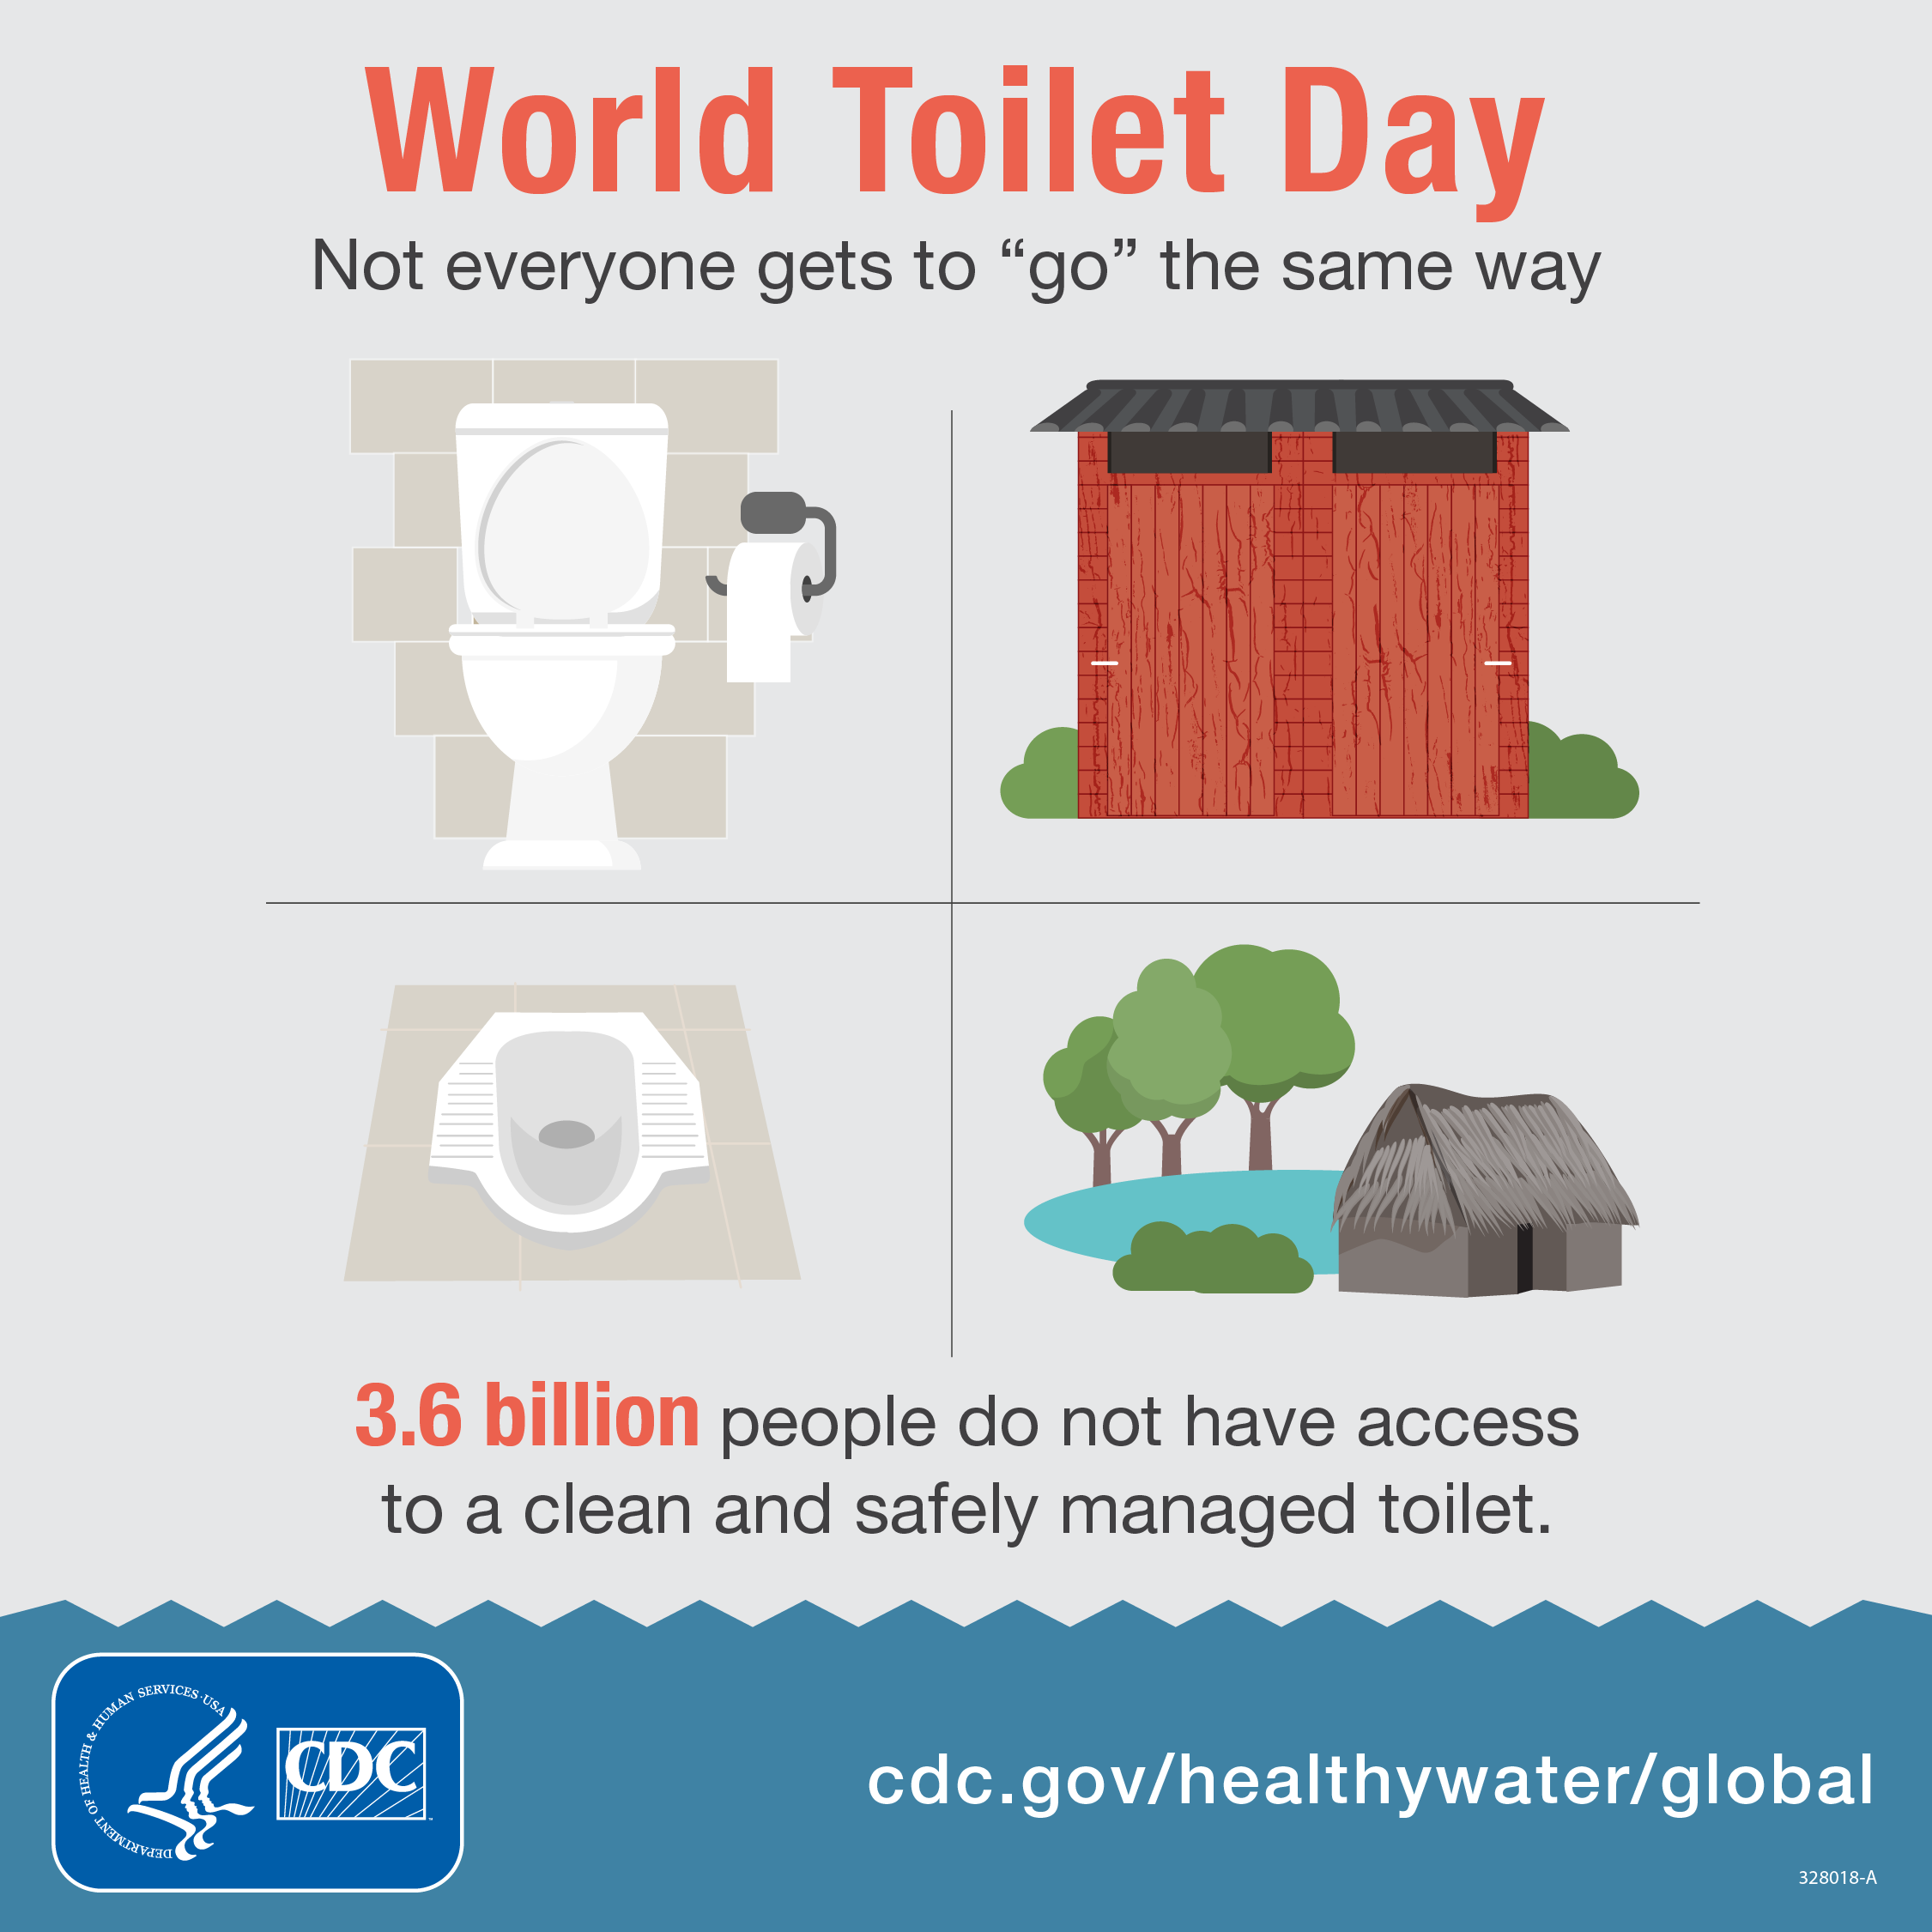 World Toilet Day. Not everyone gets to go the same way